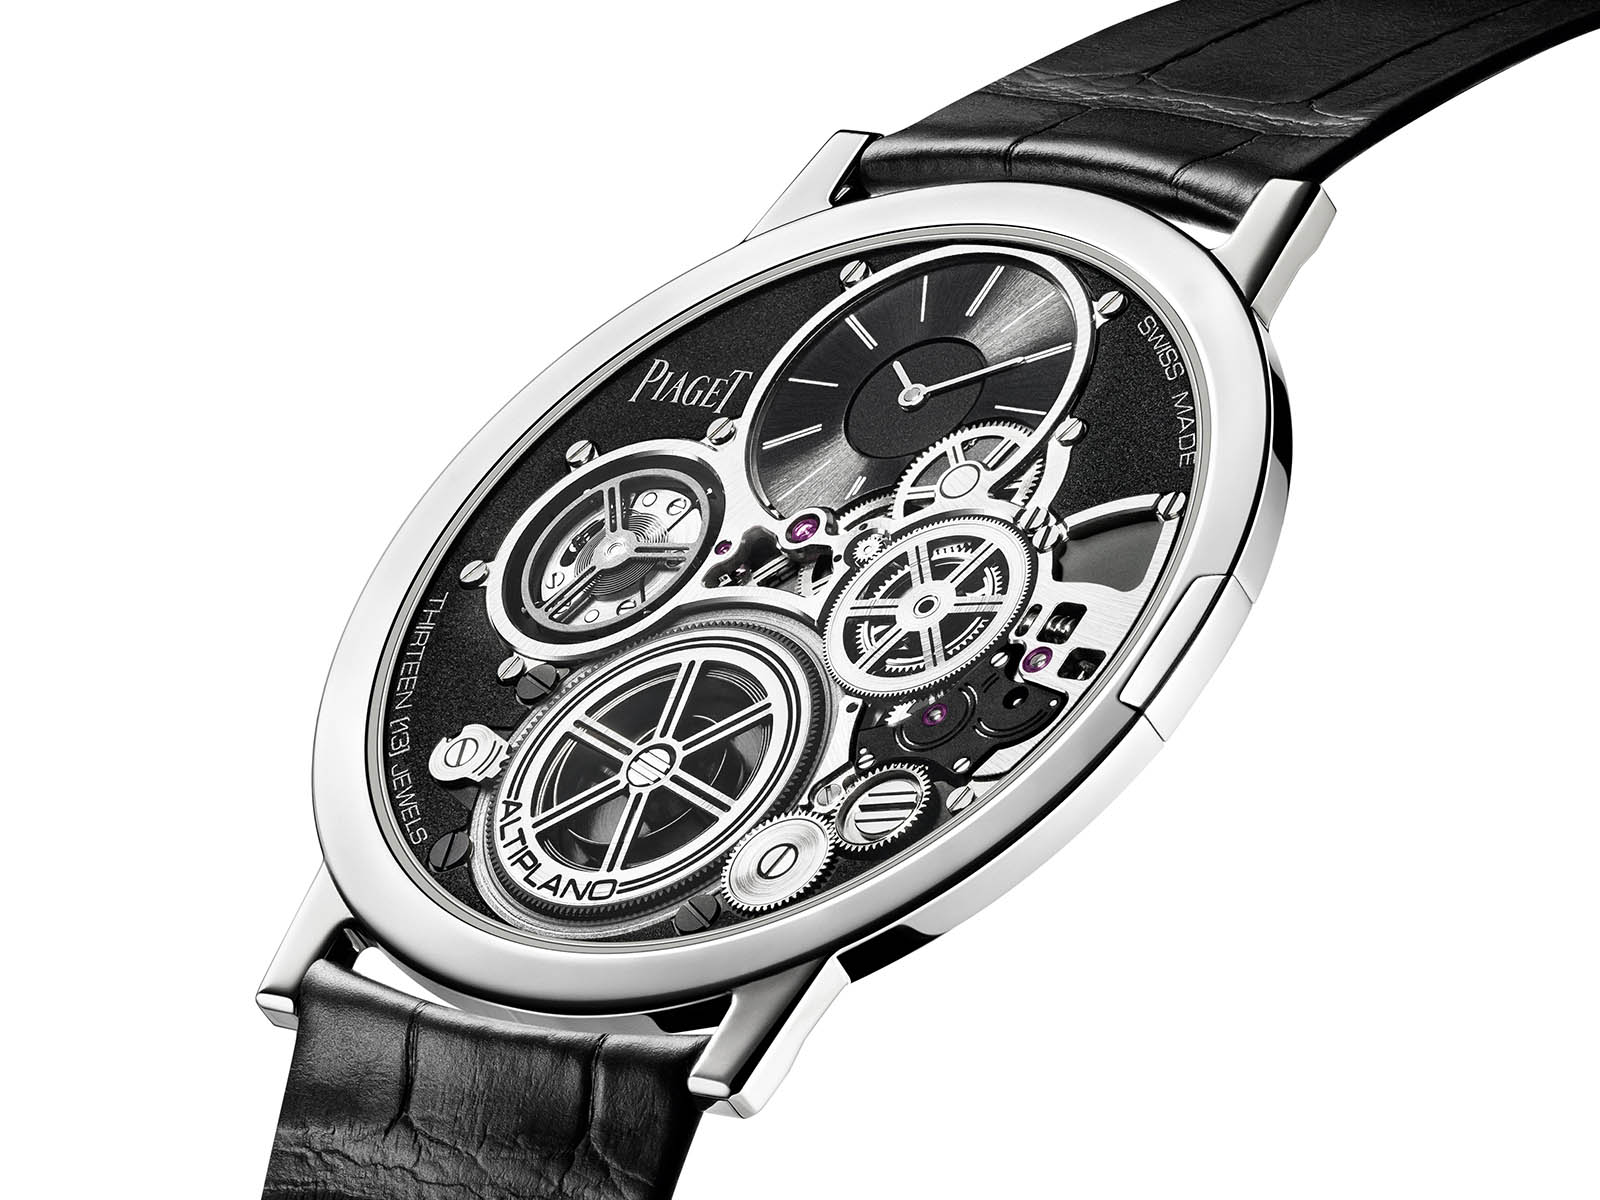 g0a43900-piaget-altiplano-ultimate-concept-2.jpg